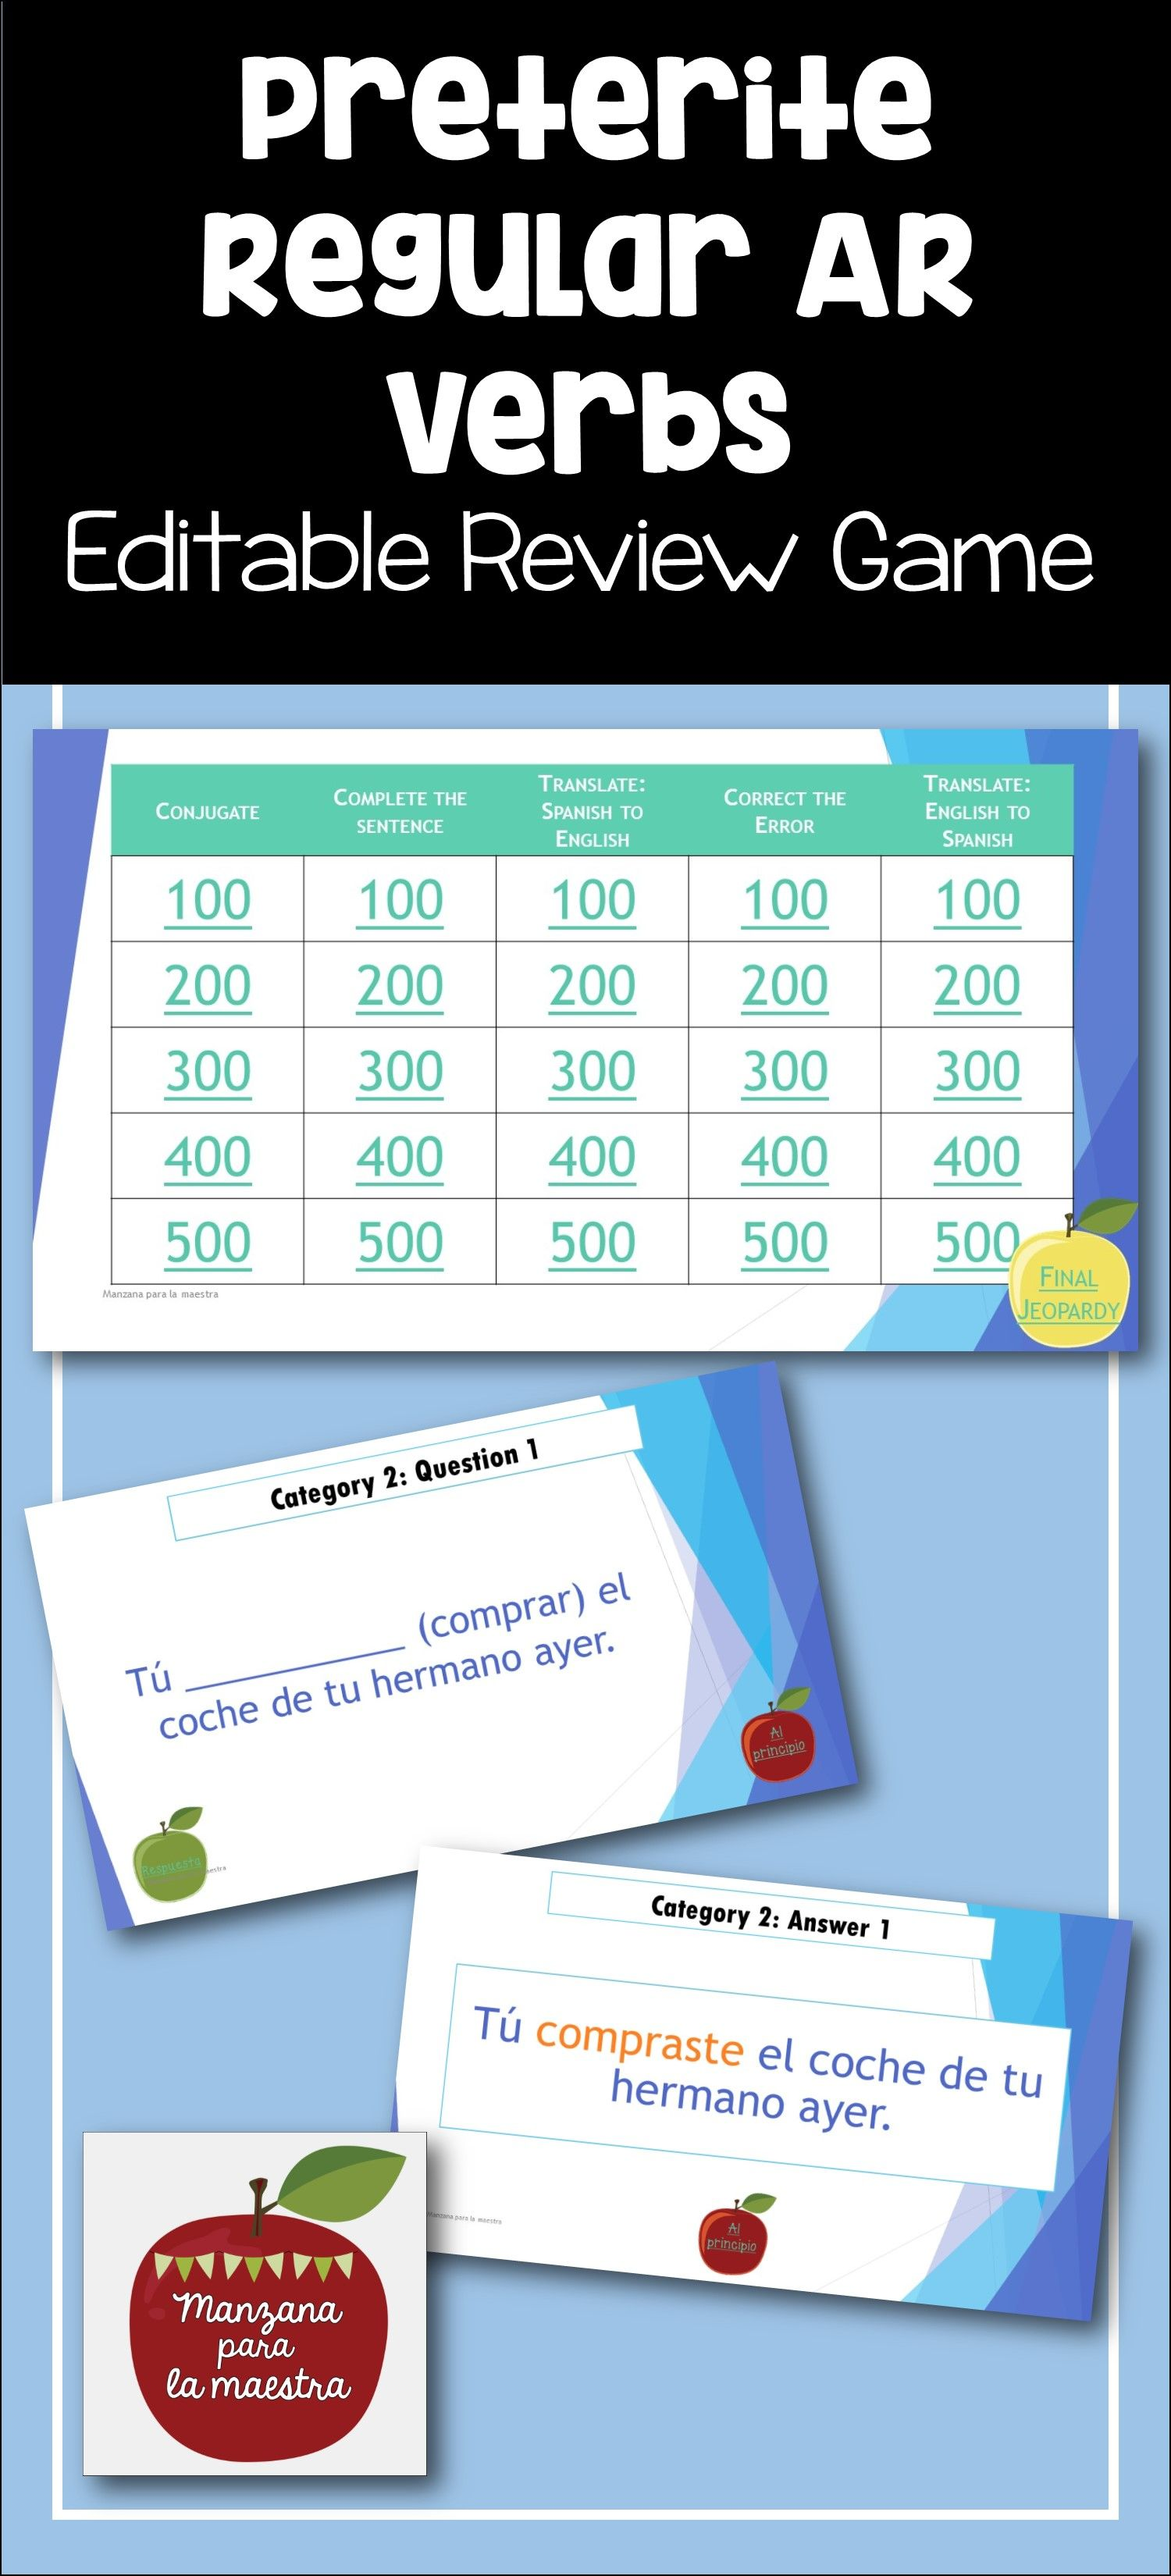 Enjoy This Editable Powerpoint Jeopardy Game To Review Regular Ar Verbs In The Preterite Tense With You Spanish Teaching Resources Preterite Preterite Spanish [ 3300 x 1500 Pixel ]